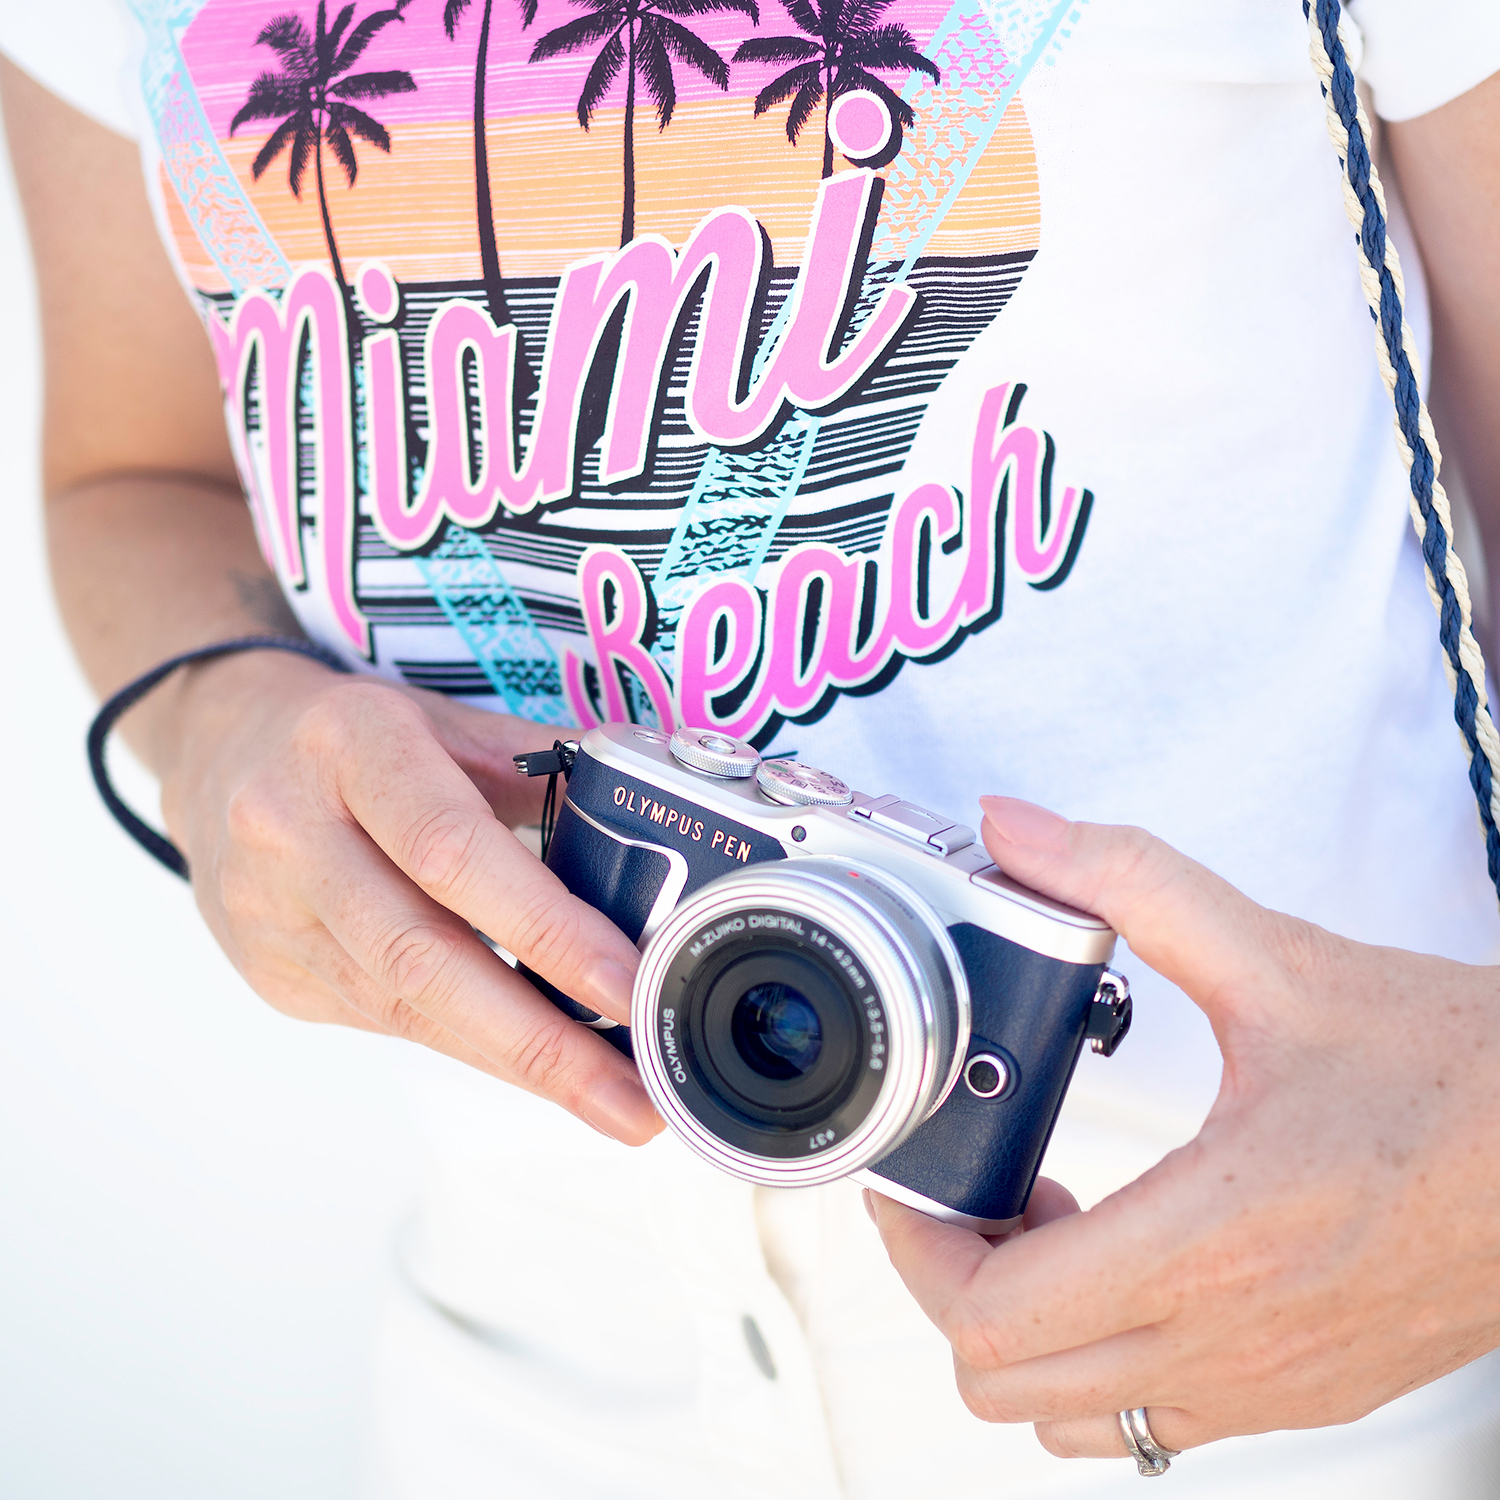 An Olympus camera held by a woman wearing a Miami T Shirt